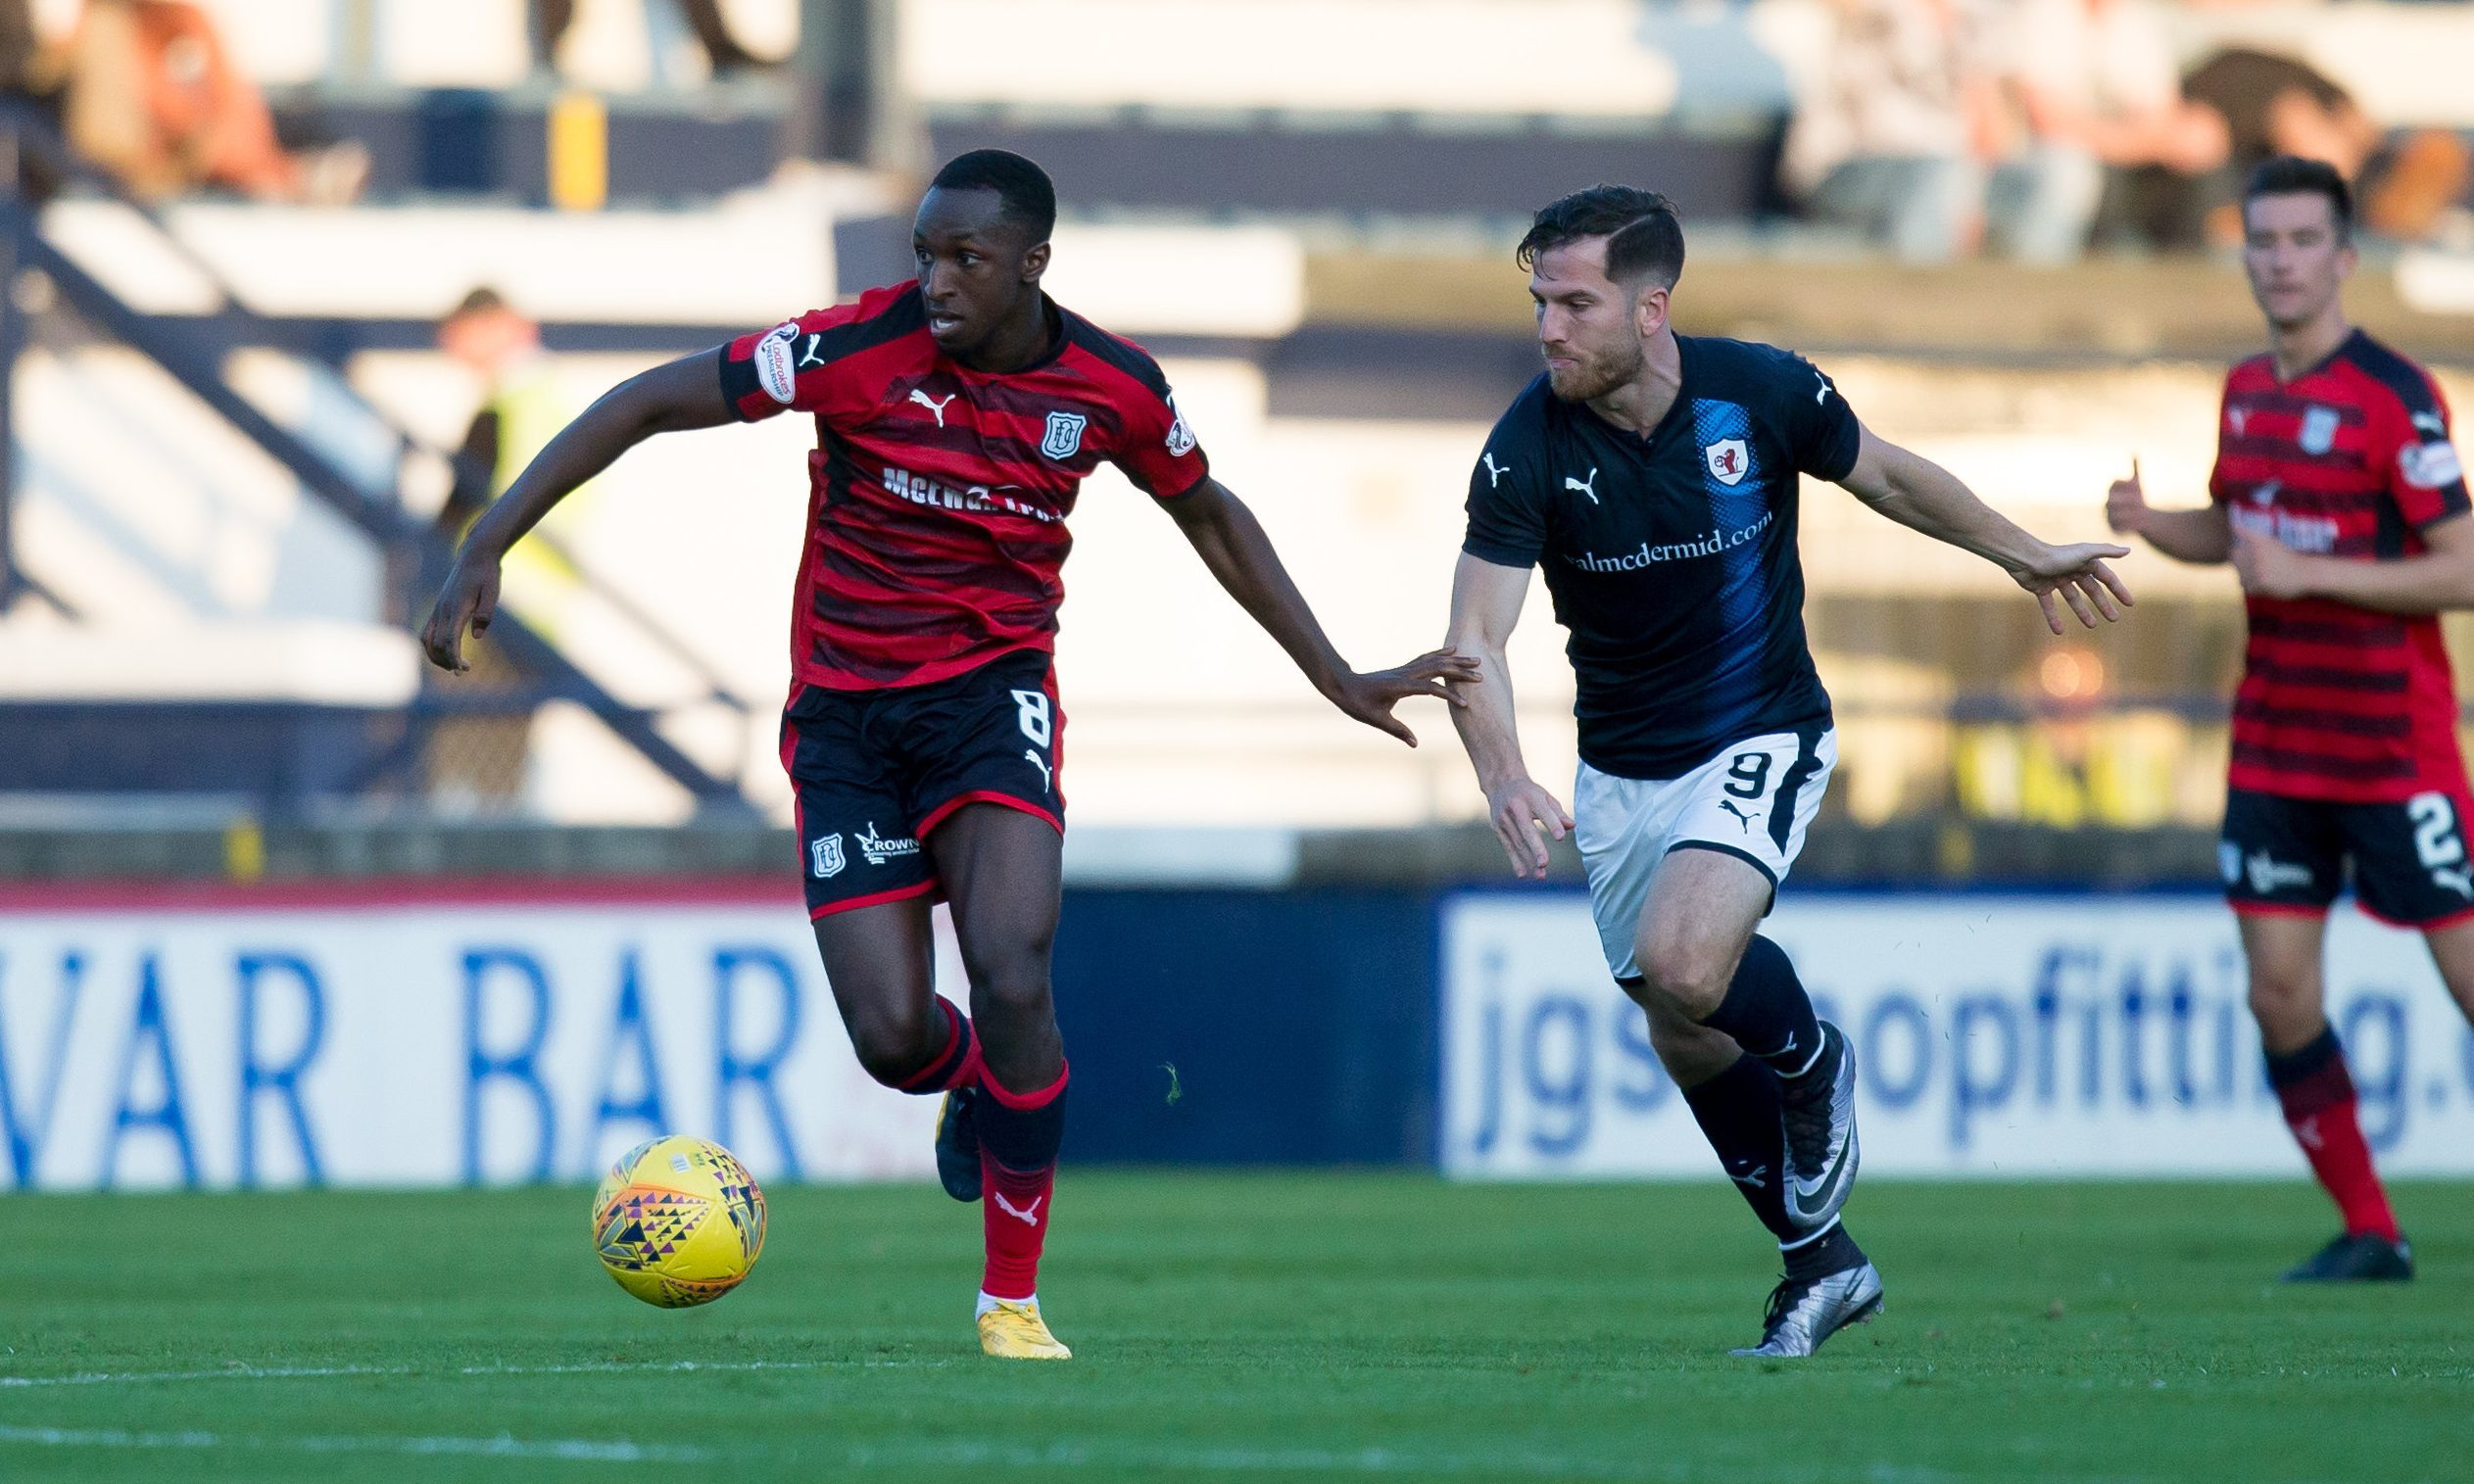 Glen Kamara goes past Raith's Liam Buchanan during the Betfred Cup clash. Picture by David Young